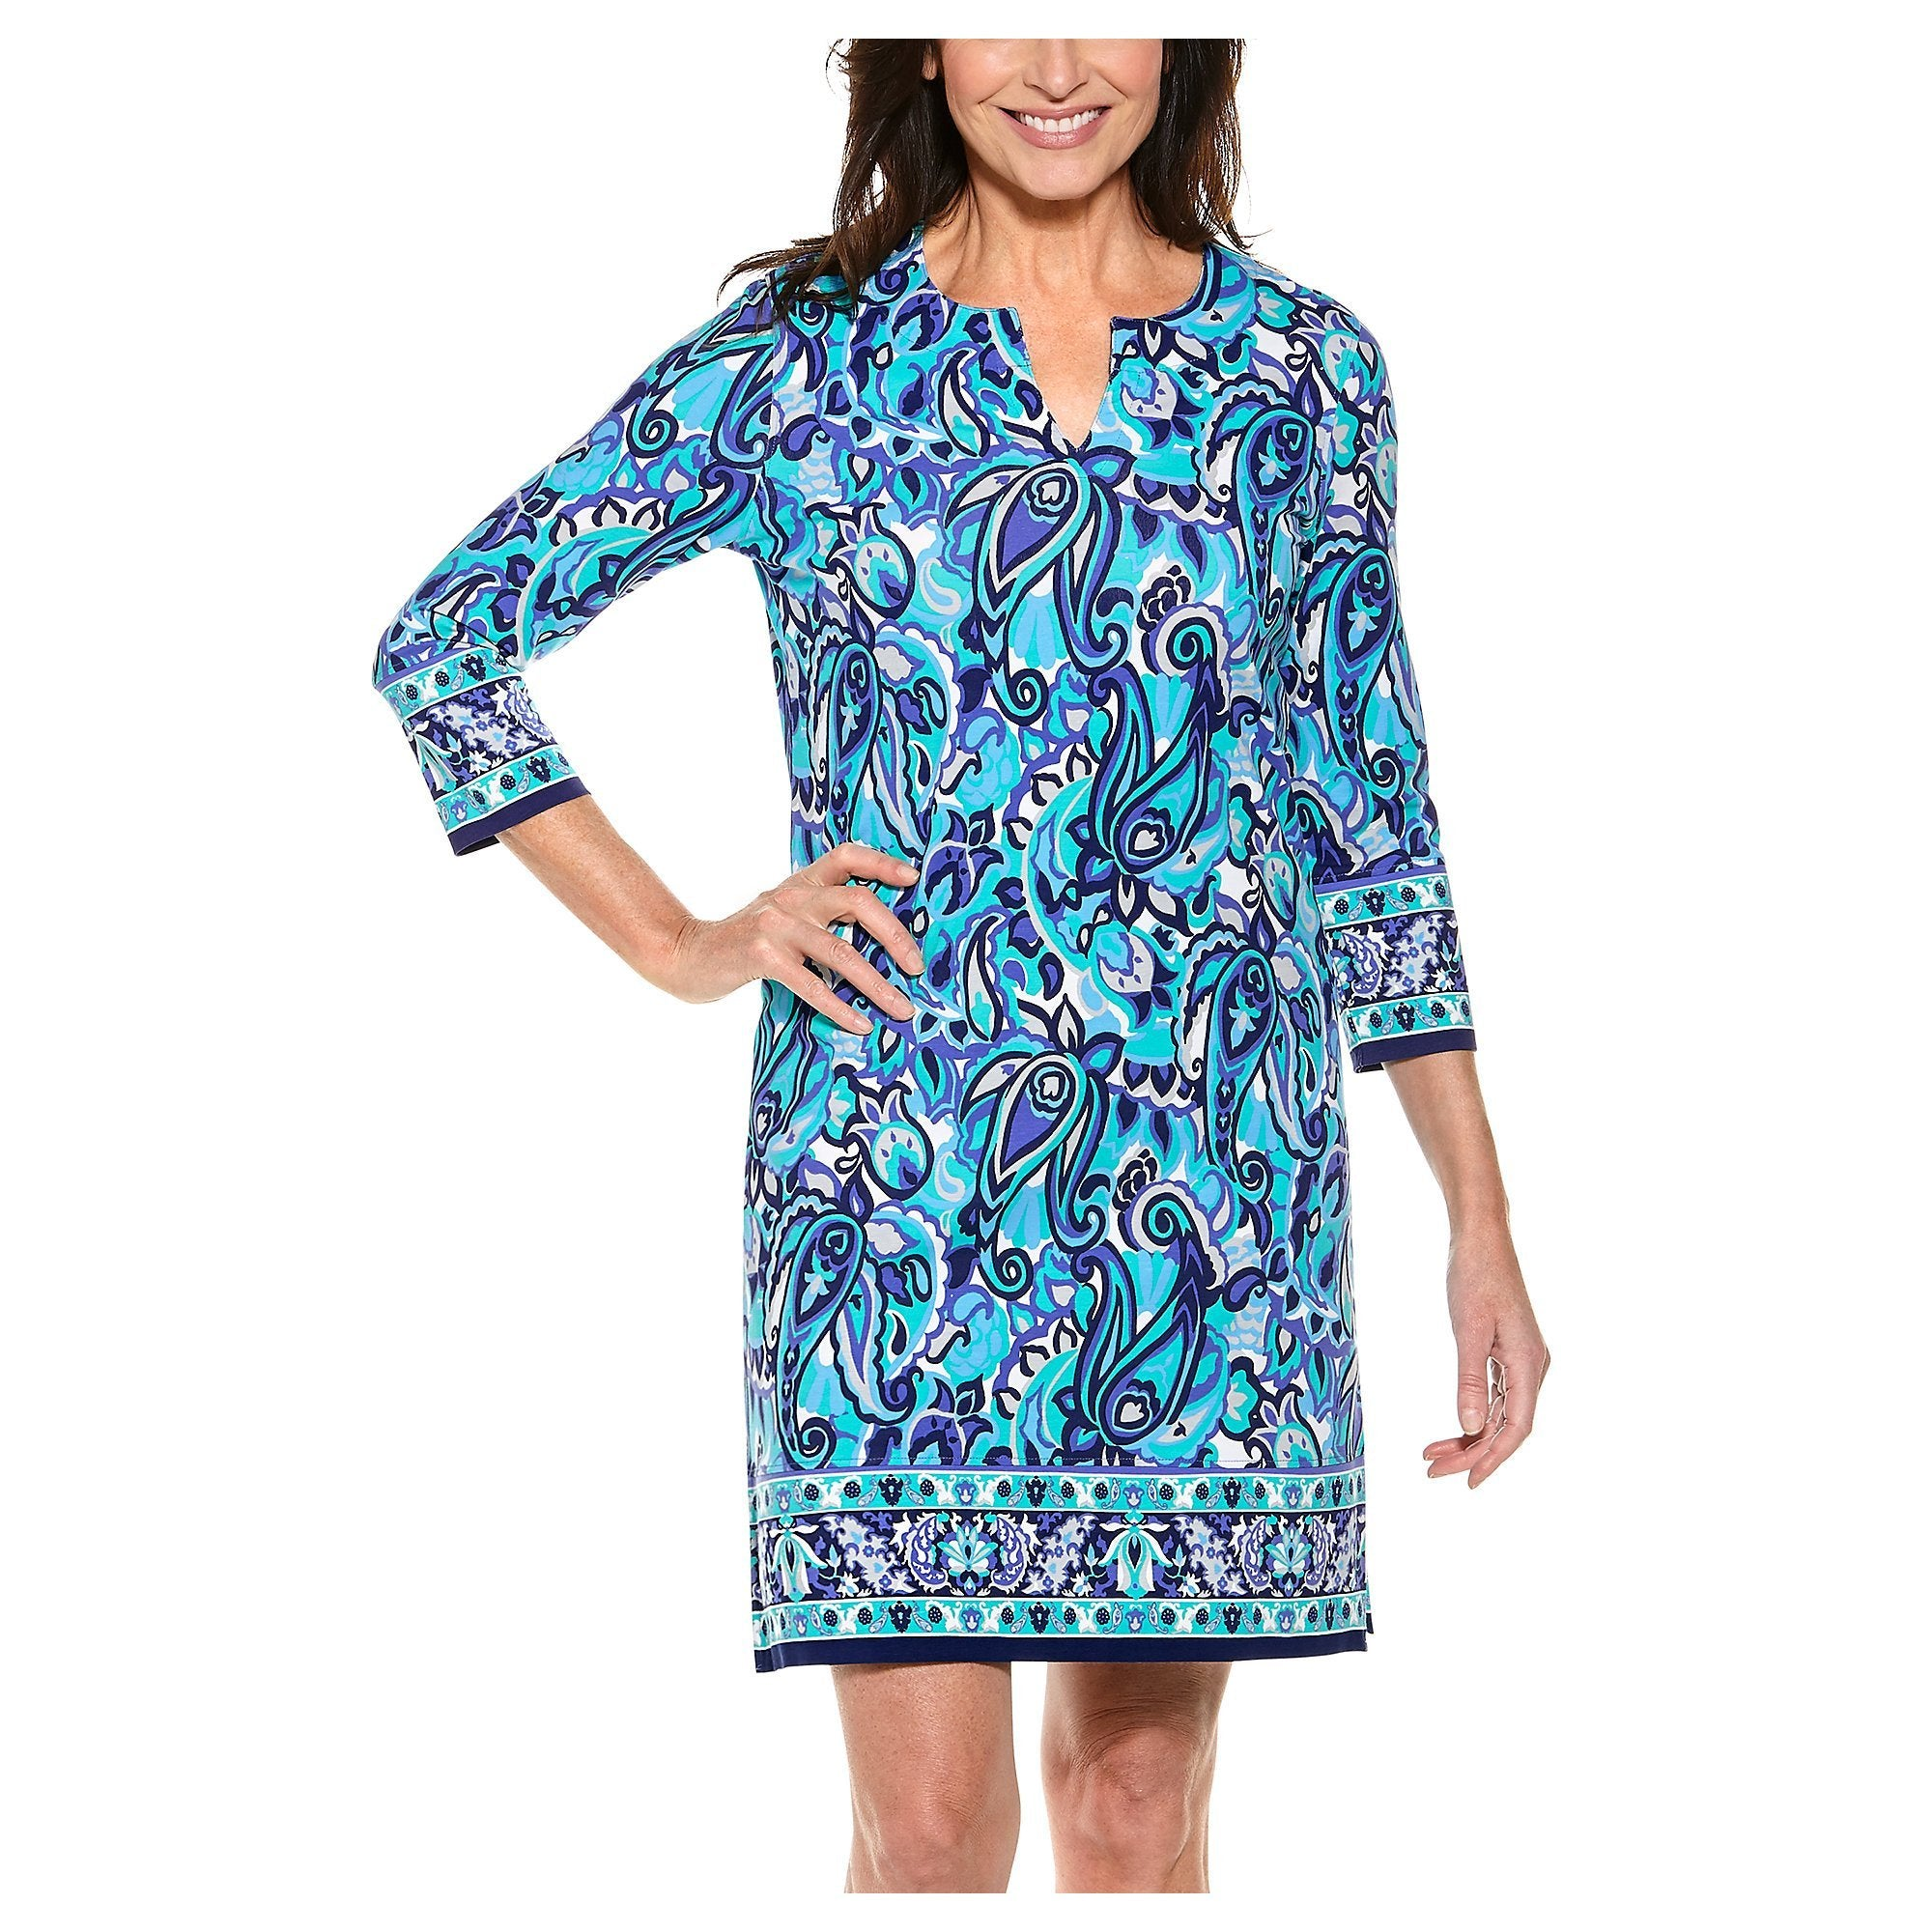 OCEANSIDE TUNIC BLUE VINTAGE PAISLEY (REVIEW on 1.14.21) - Molly's! A Chic and Unique Boutique